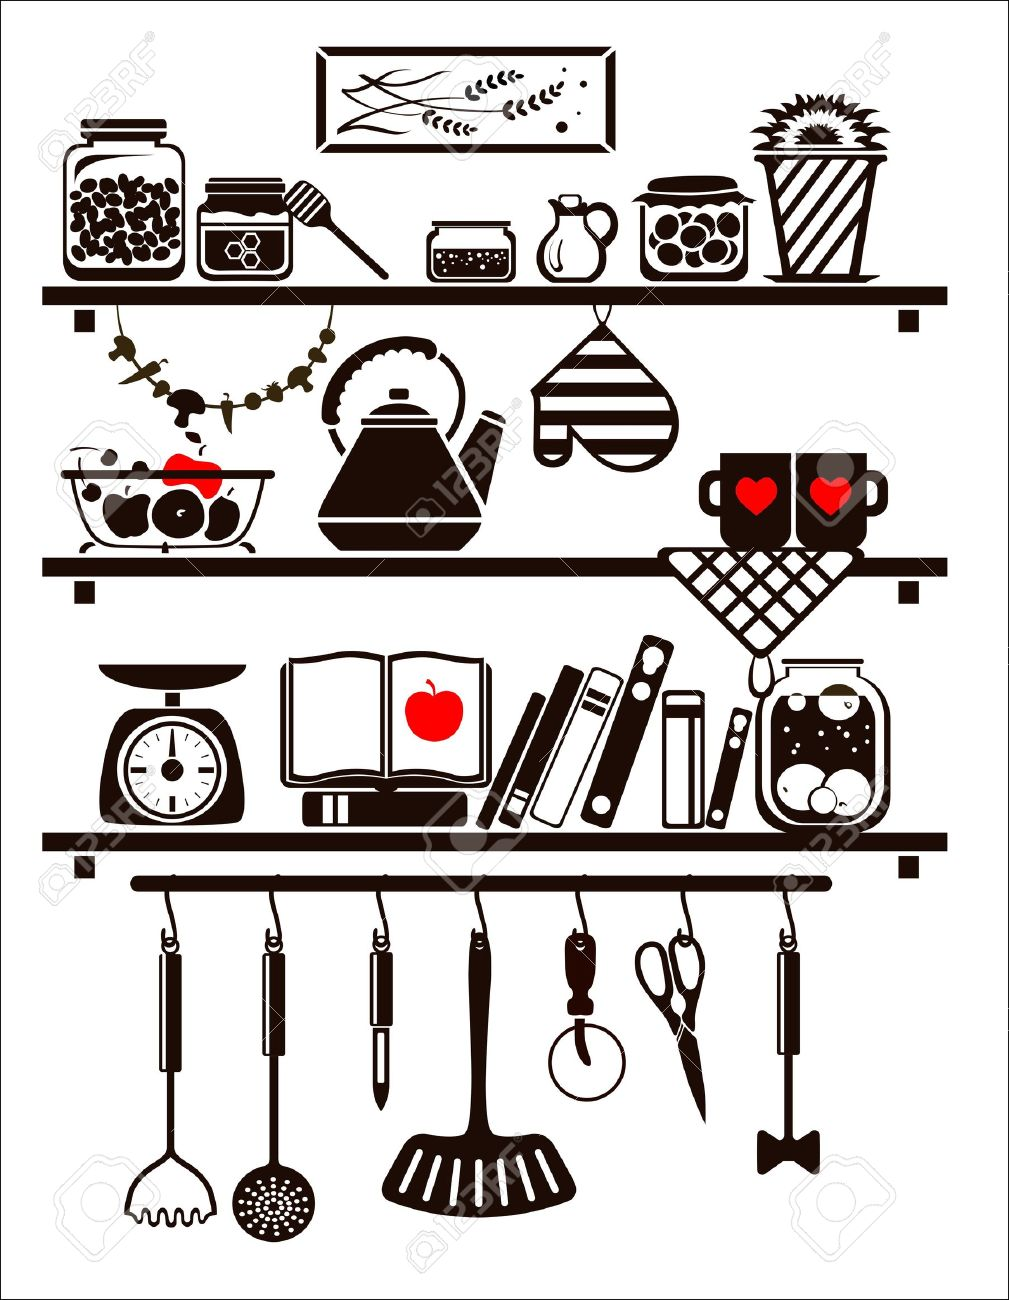 Vector food and drinks icons set, drawn up as kitchen shelves Stock Vector - 19373415